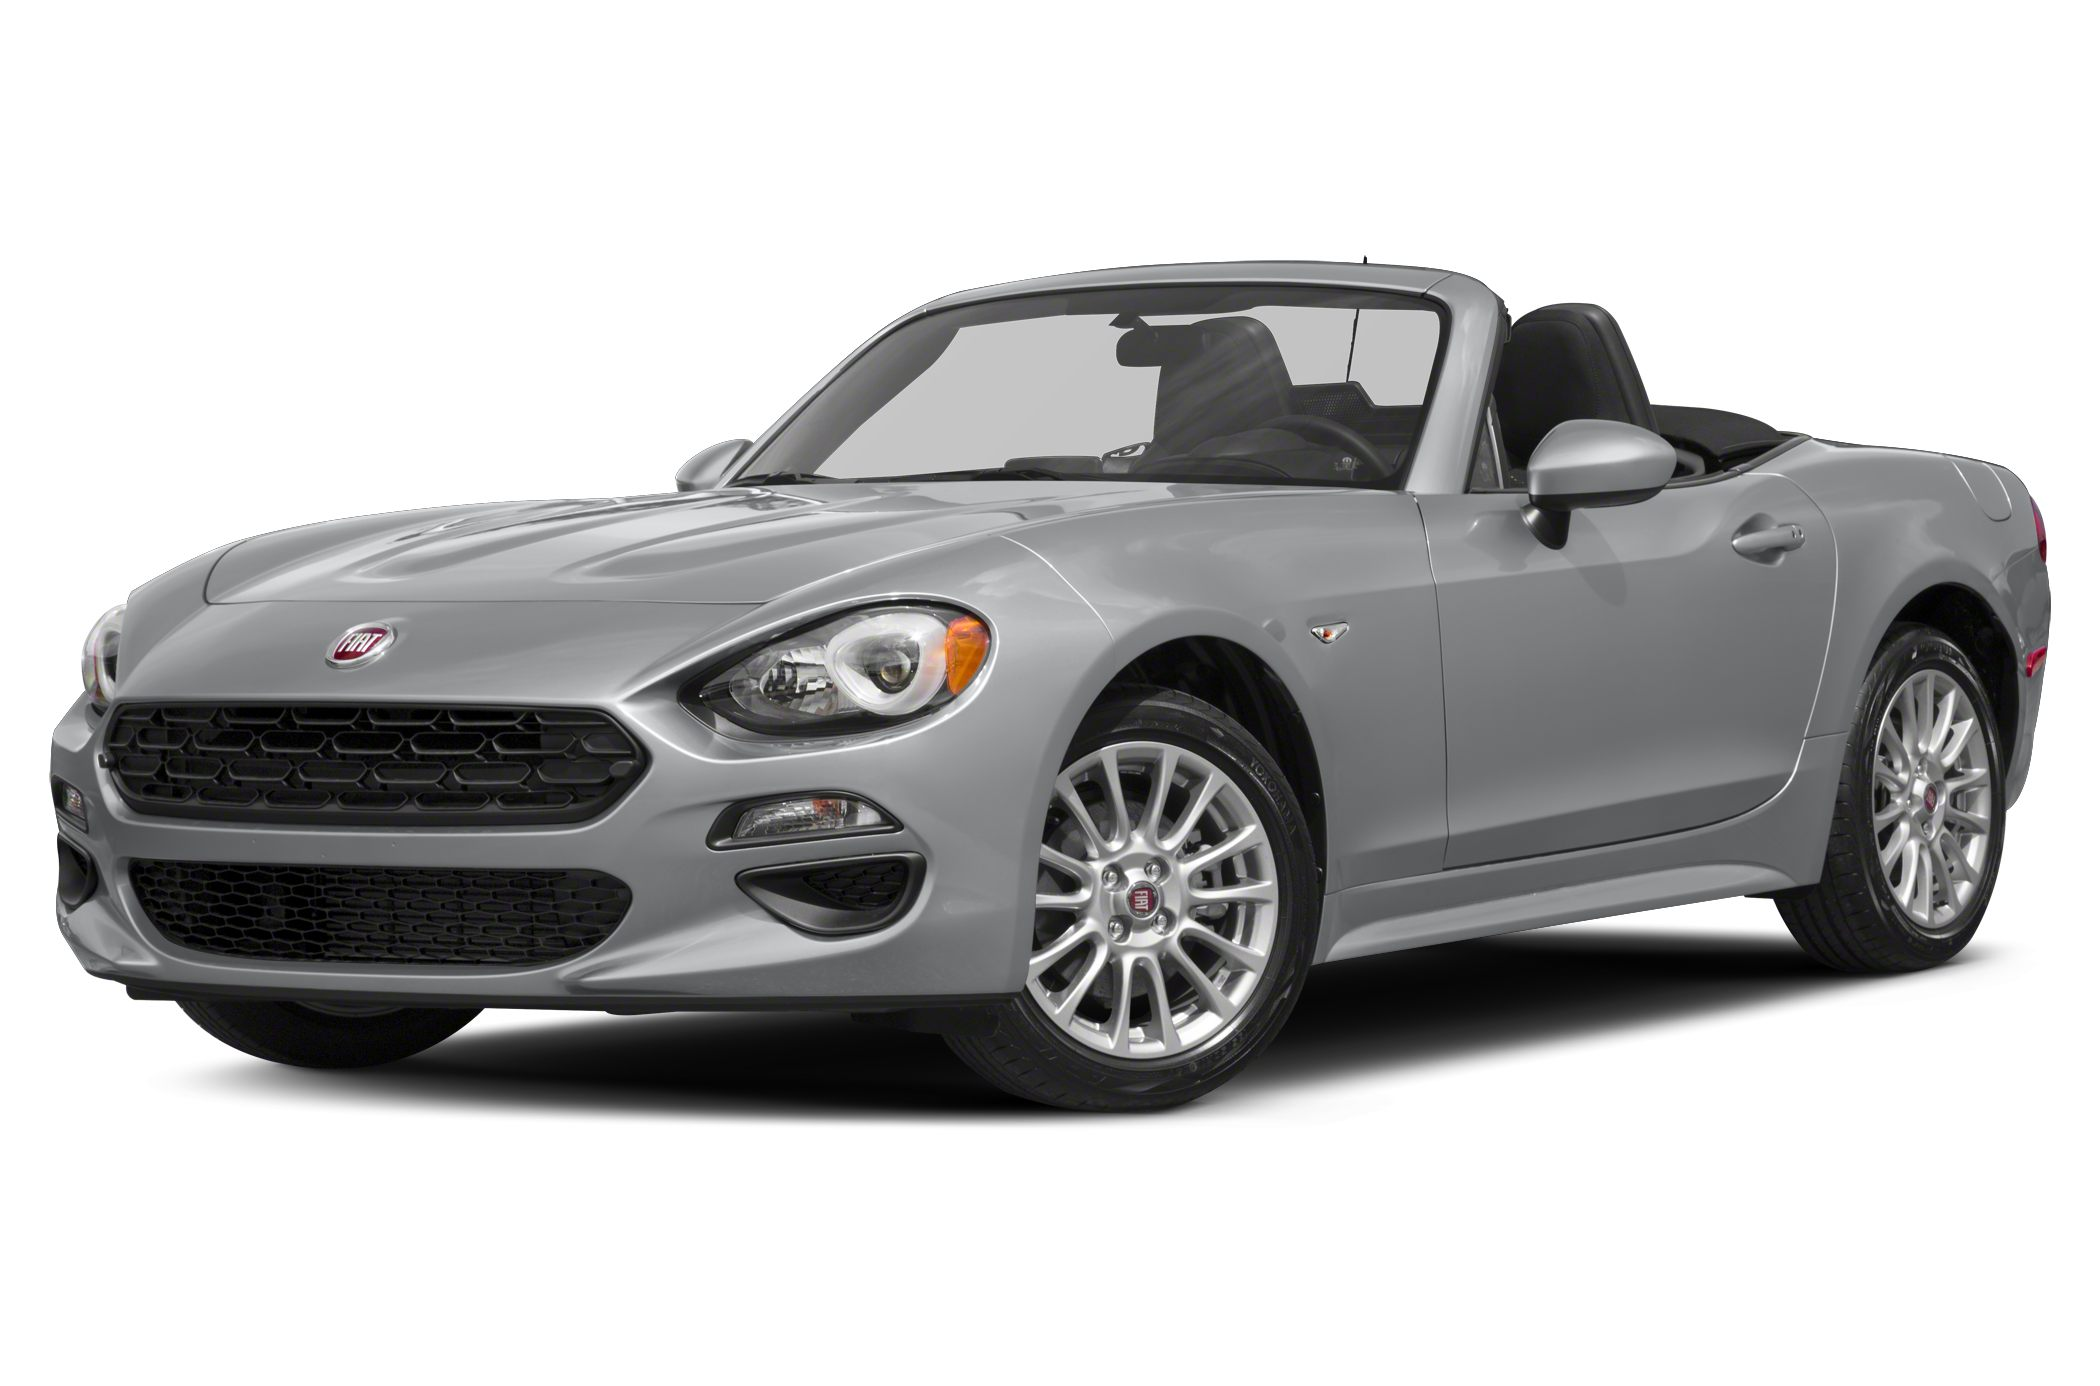 2020 Fiat 124 Spider Abarth gets 'Scorpion Sting' appearance package